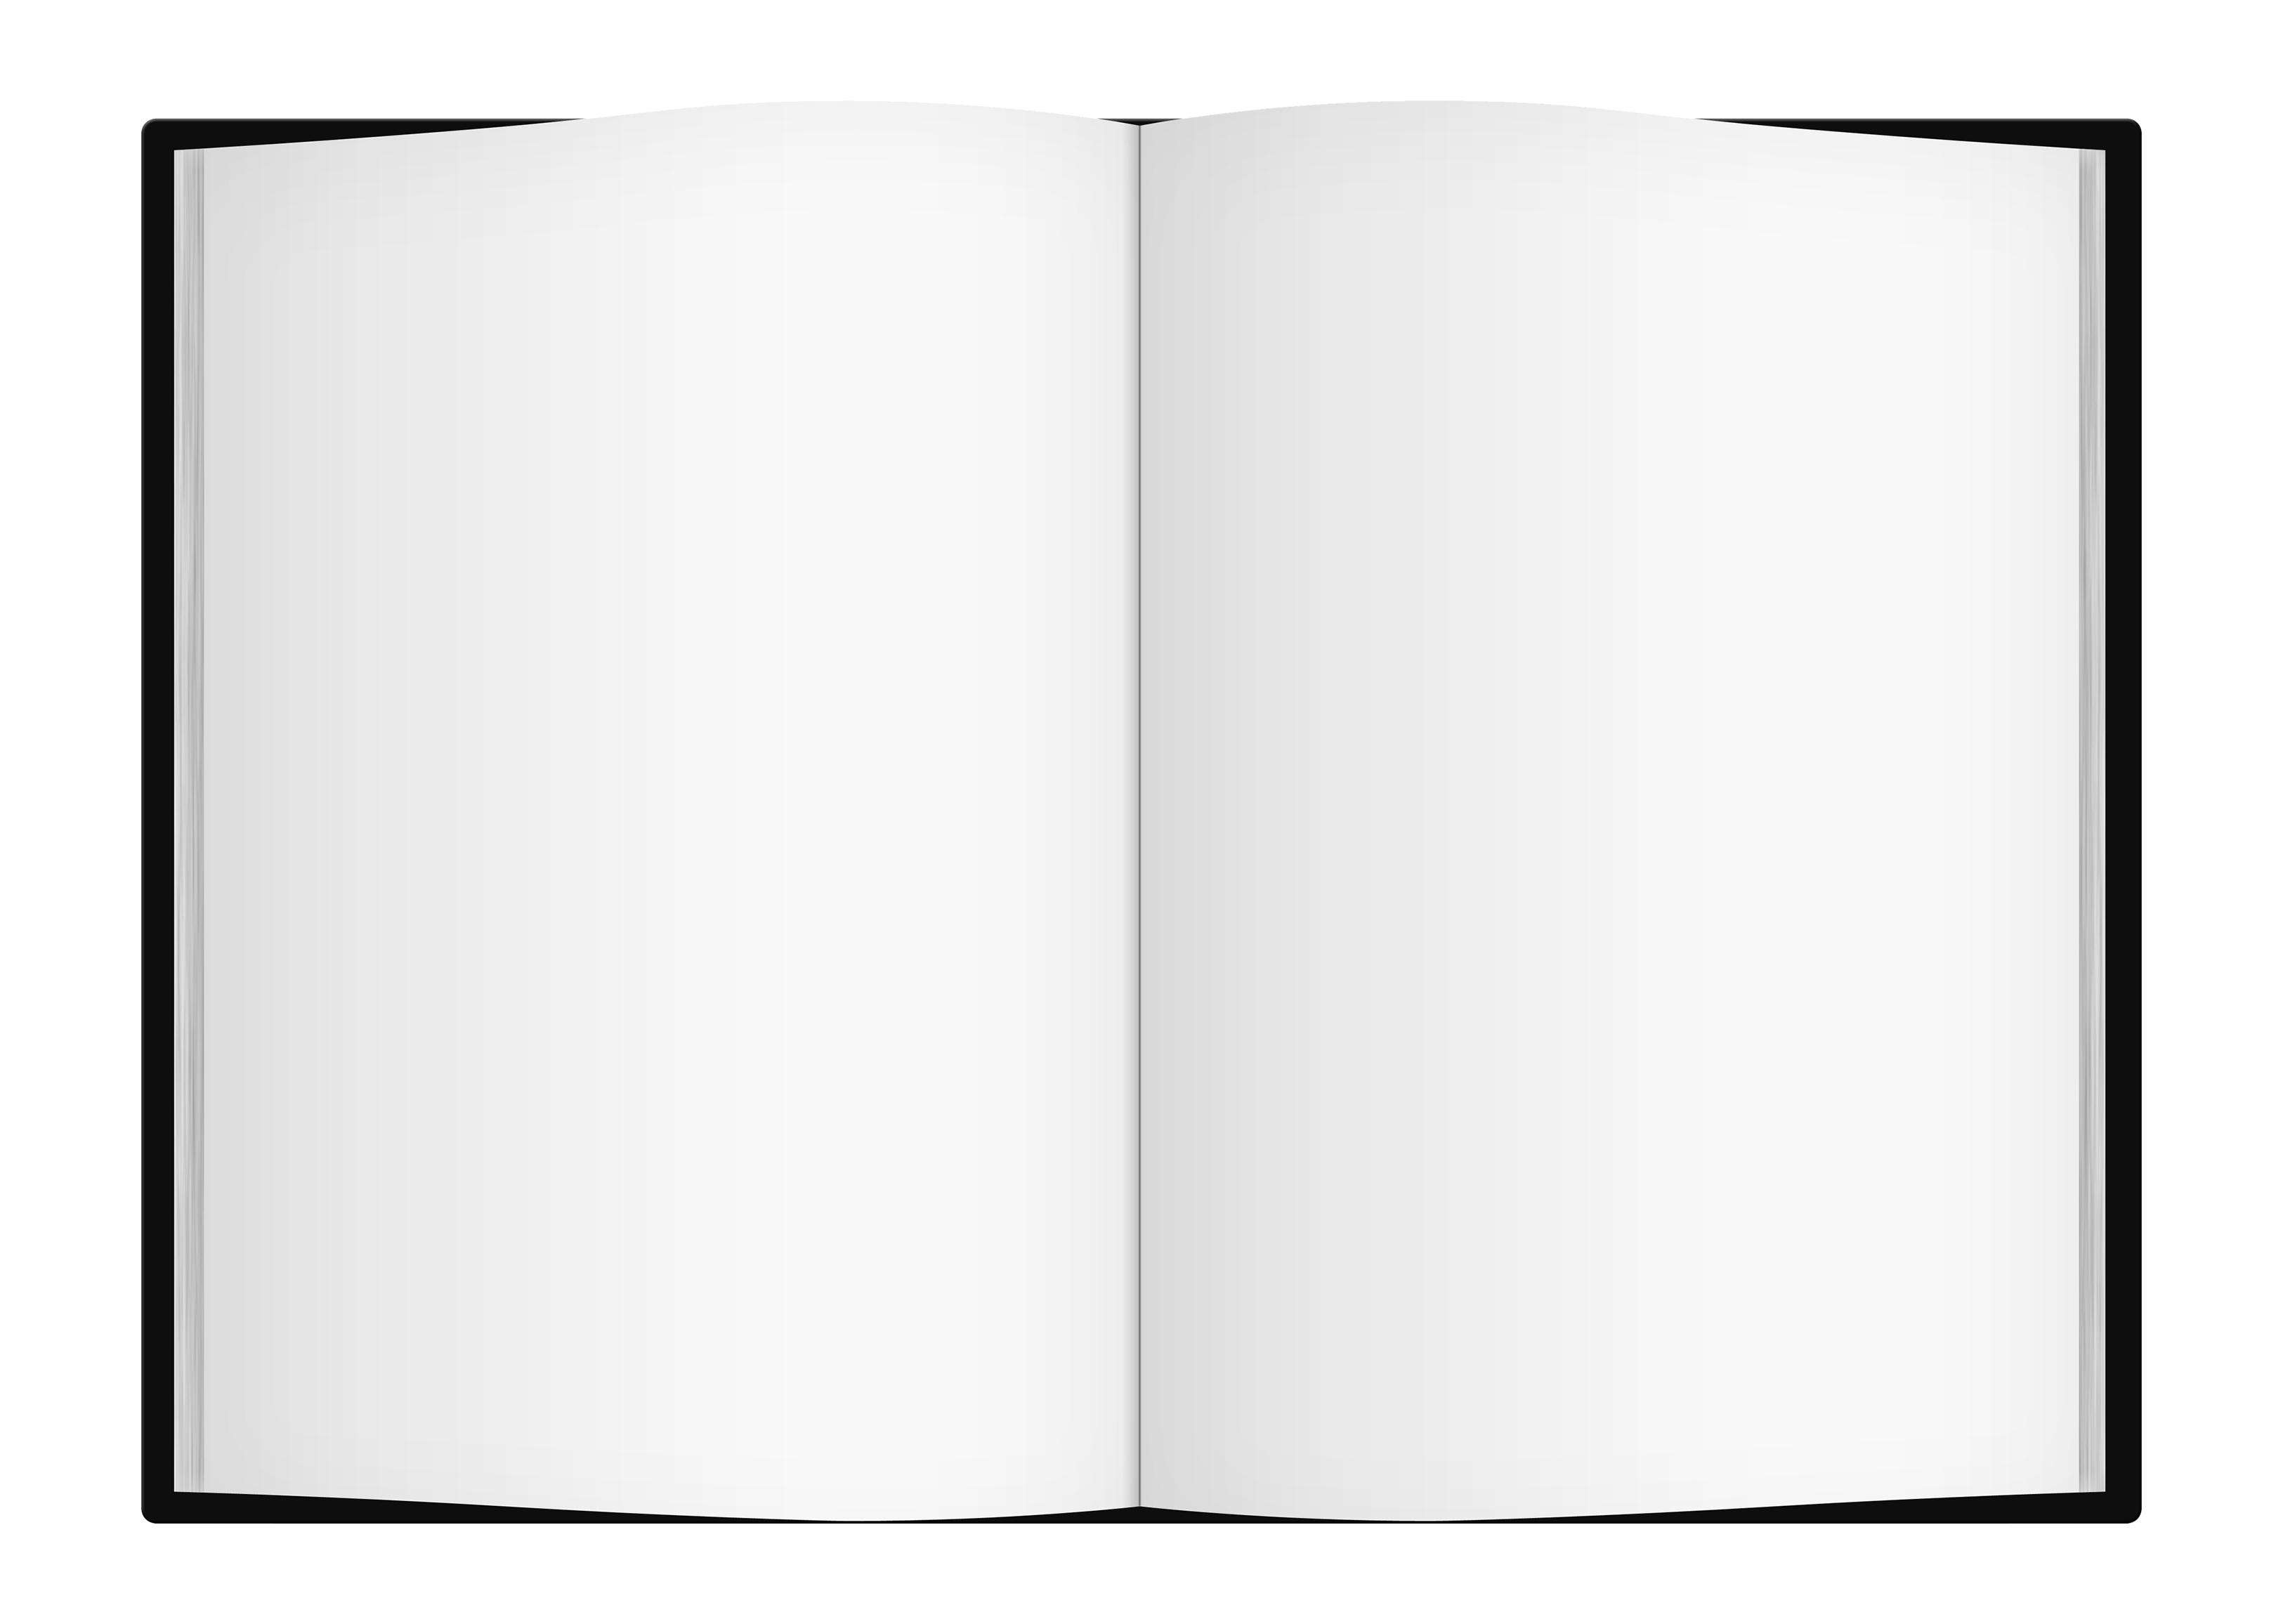 Book Cover Template Png ~ Picture of open book cliparts